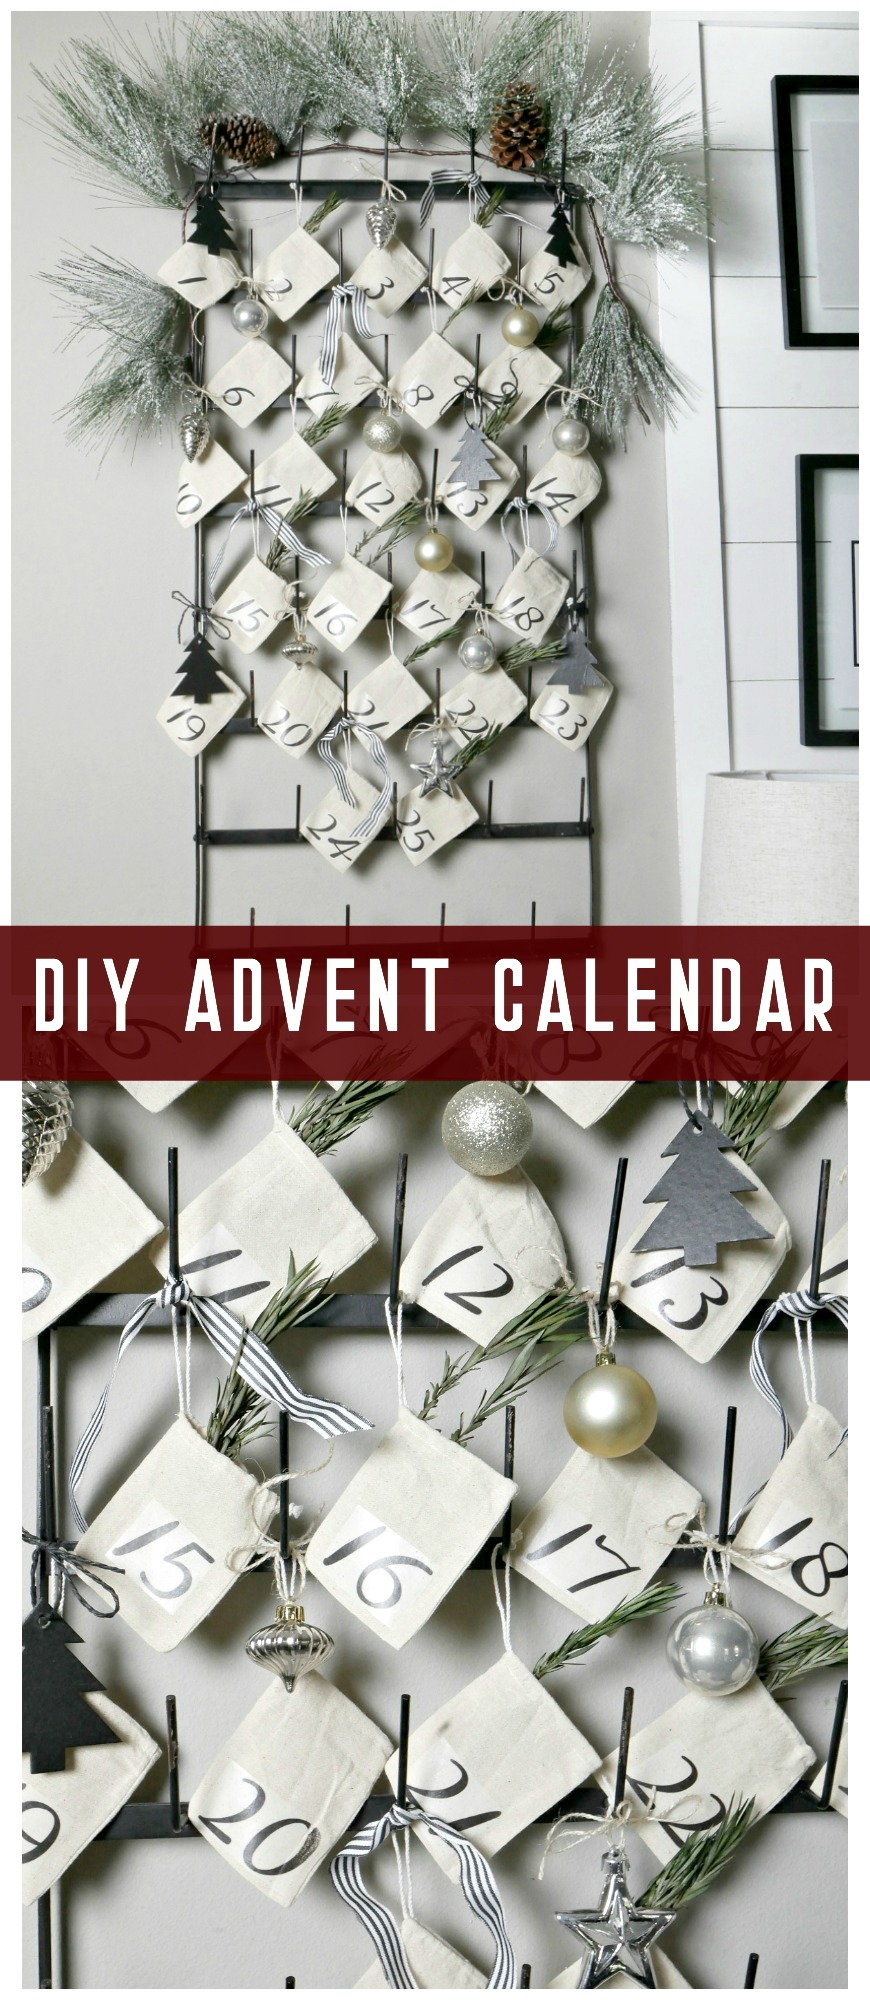 Create your own DIY Advent Calendar in less than 30 minutes! These little muslin bags hang perfectly on this vintage bottle drying rack for a festive look.